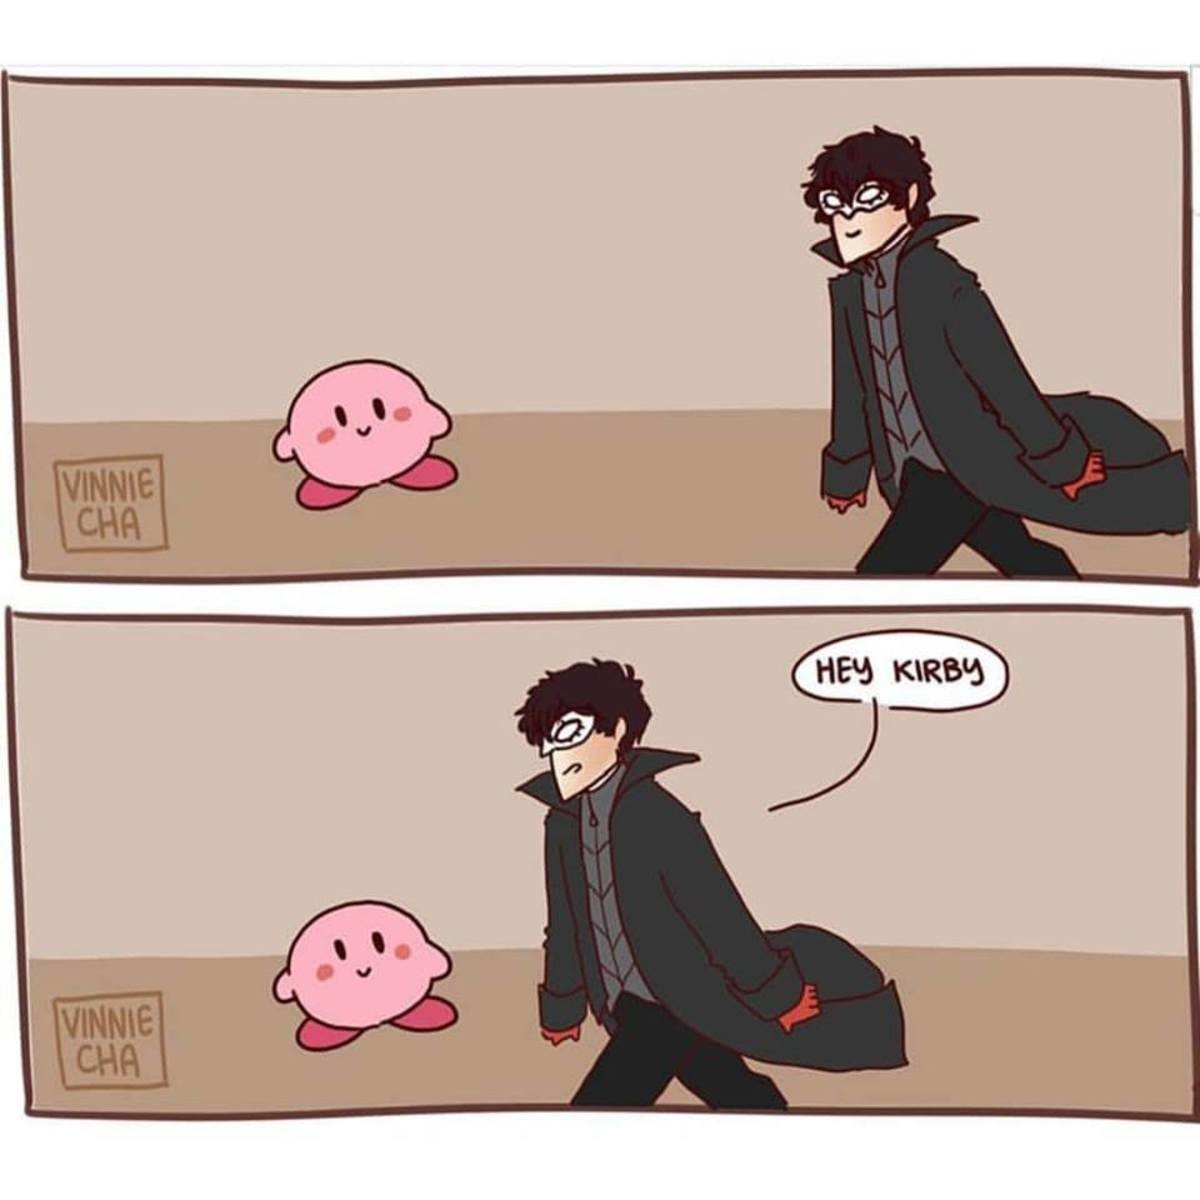 Kirby had enough.. .. Feels like I'm gonna get a lot of use out of this one